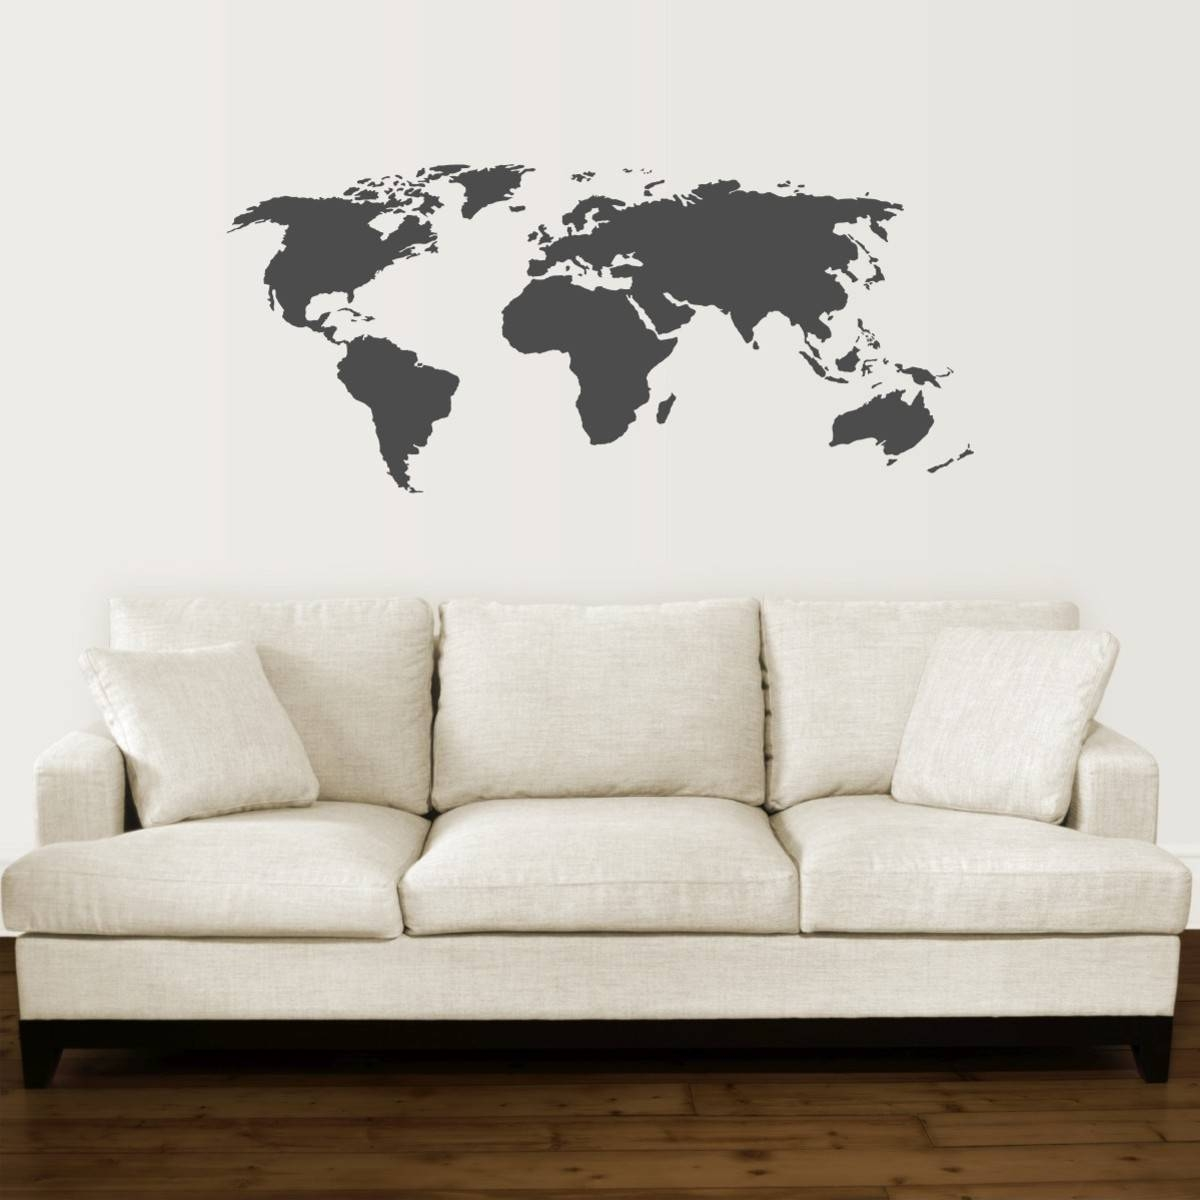 Wall Art Designs: Awesome Best Hanging World Maps Wall Art Decor For 2017 Framed World Map Wall Art (View 16 of 20)